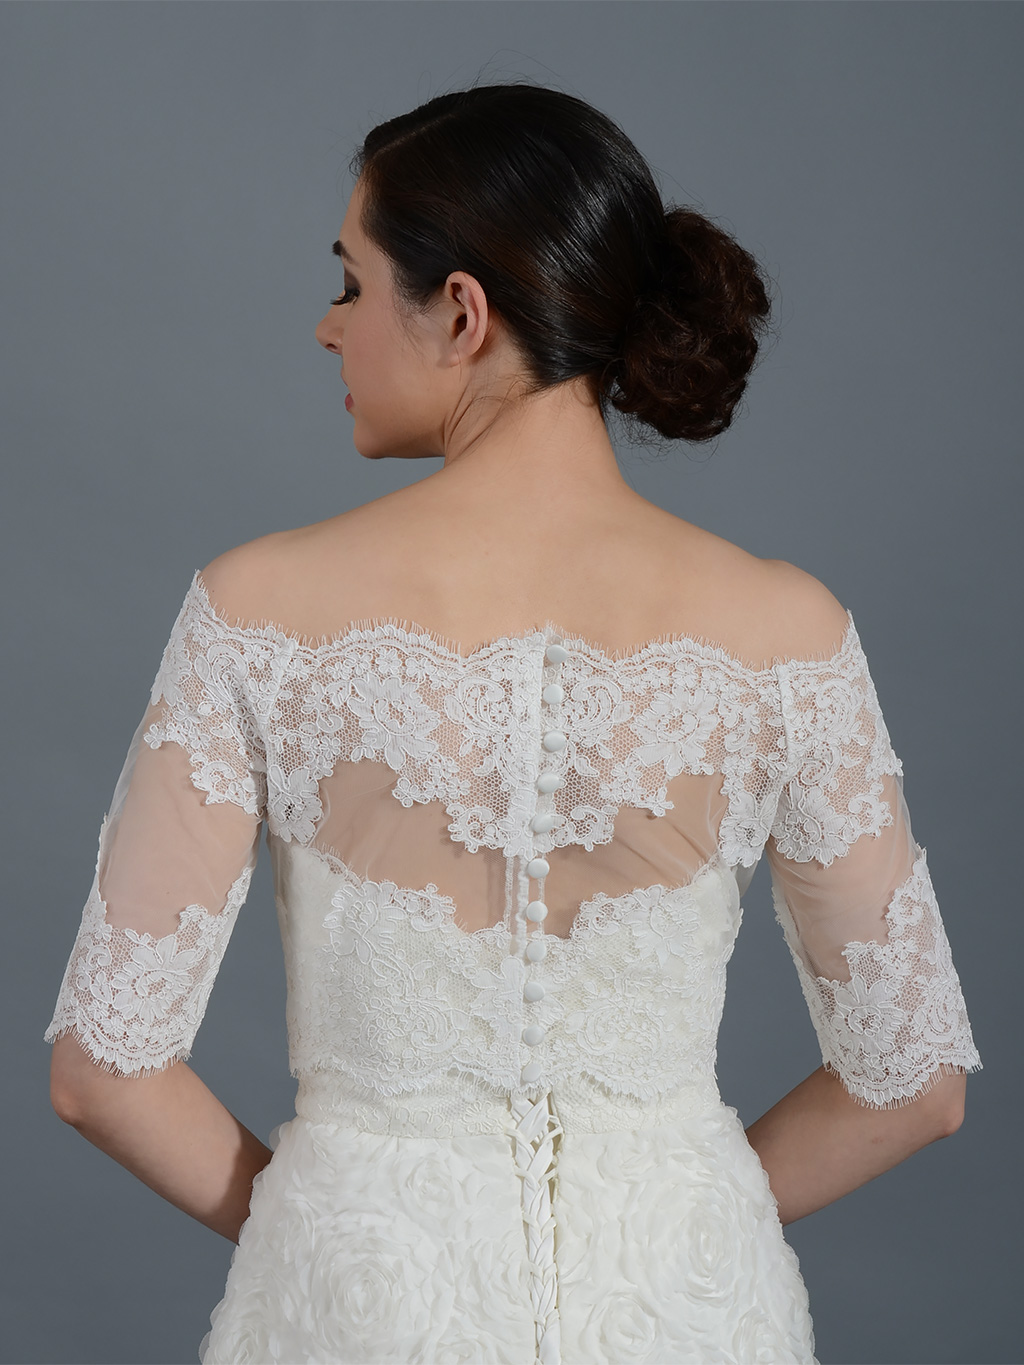 Pin Lace Bolero Jackets Great For Adding A Little Bit Of Coverage on ...